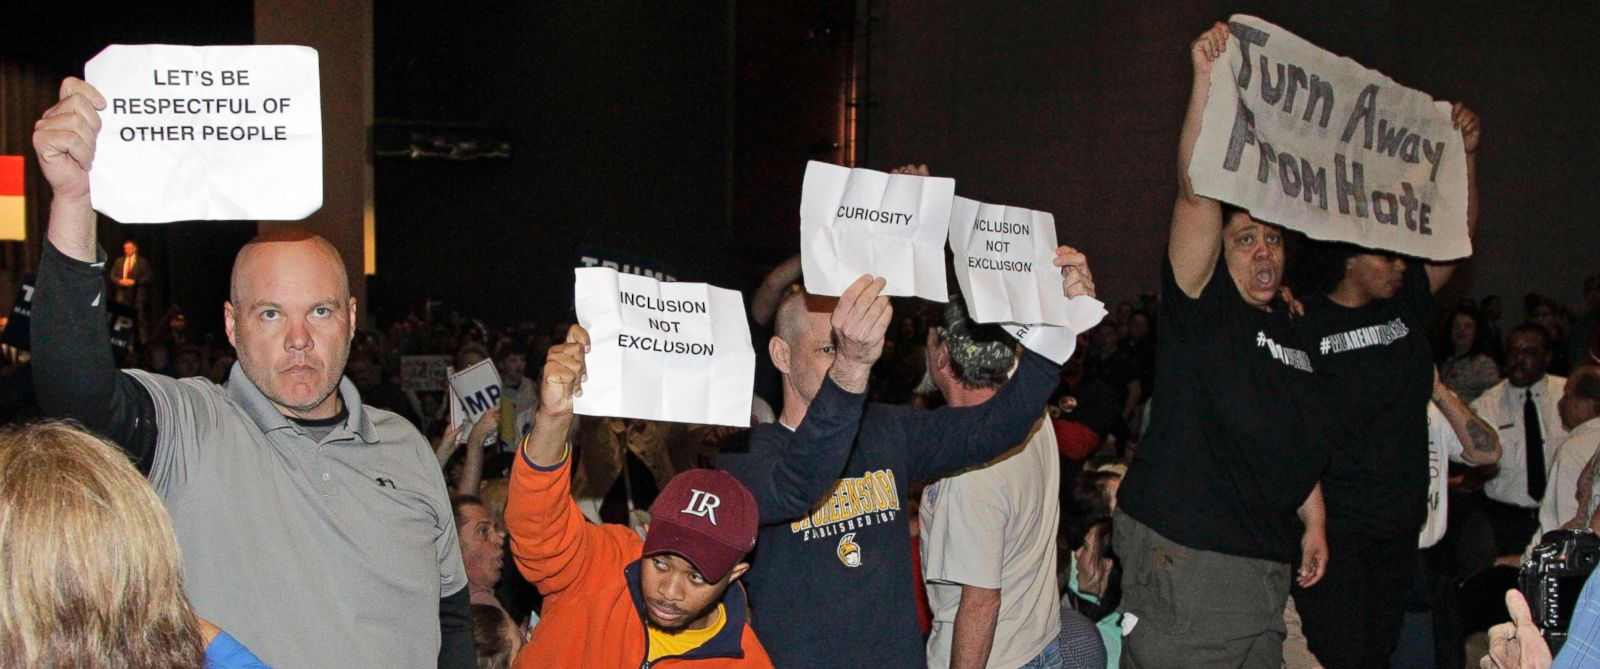 PHOTO: Protesters hold up signs as Republican presidential candidate Donald Trump speaks at a rally at Lenoir-Rhyne University in Hickory, N.C., March 14, 2016.